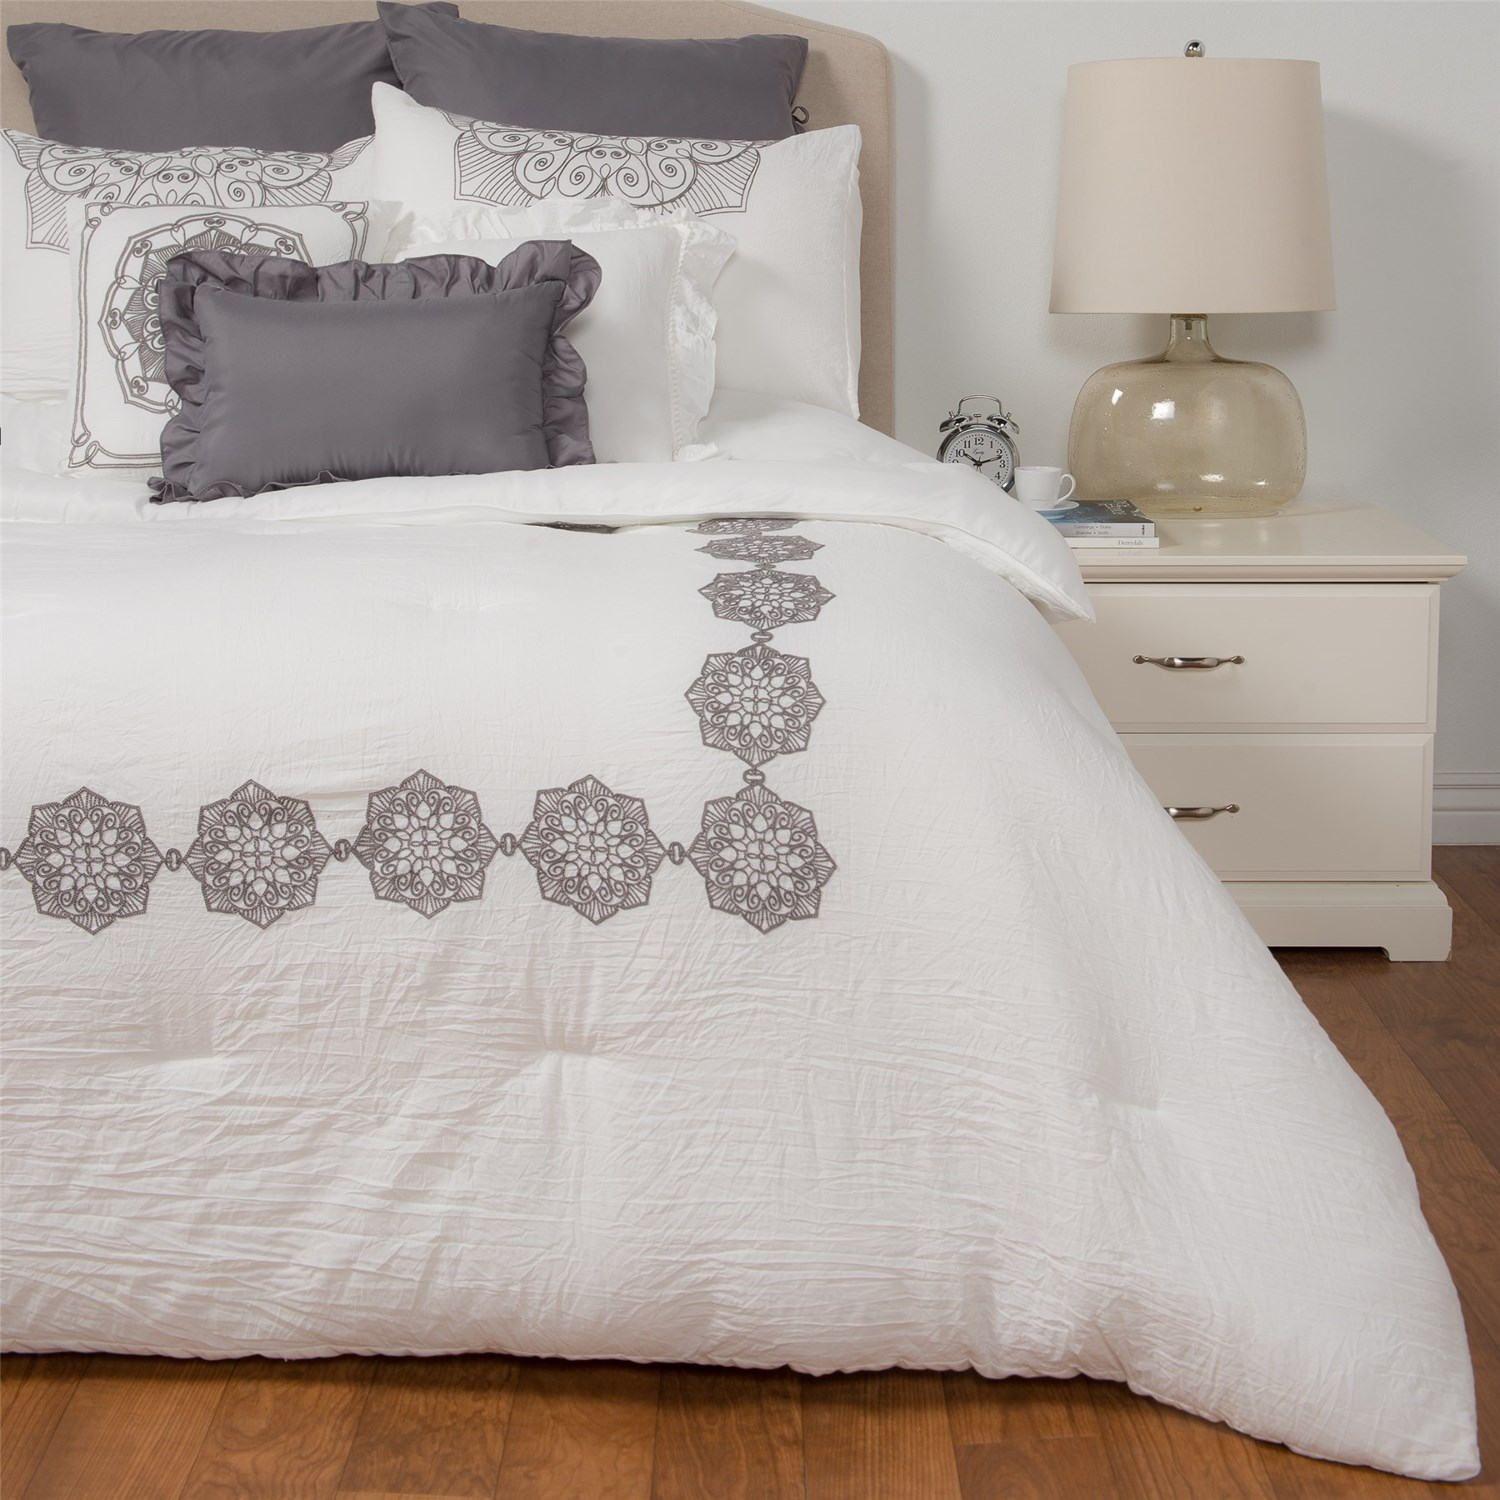 moon crescent towels kas bedding girls full of quilt curtains king satin bath beyond tux bed cool size echo sets barry sale barbara